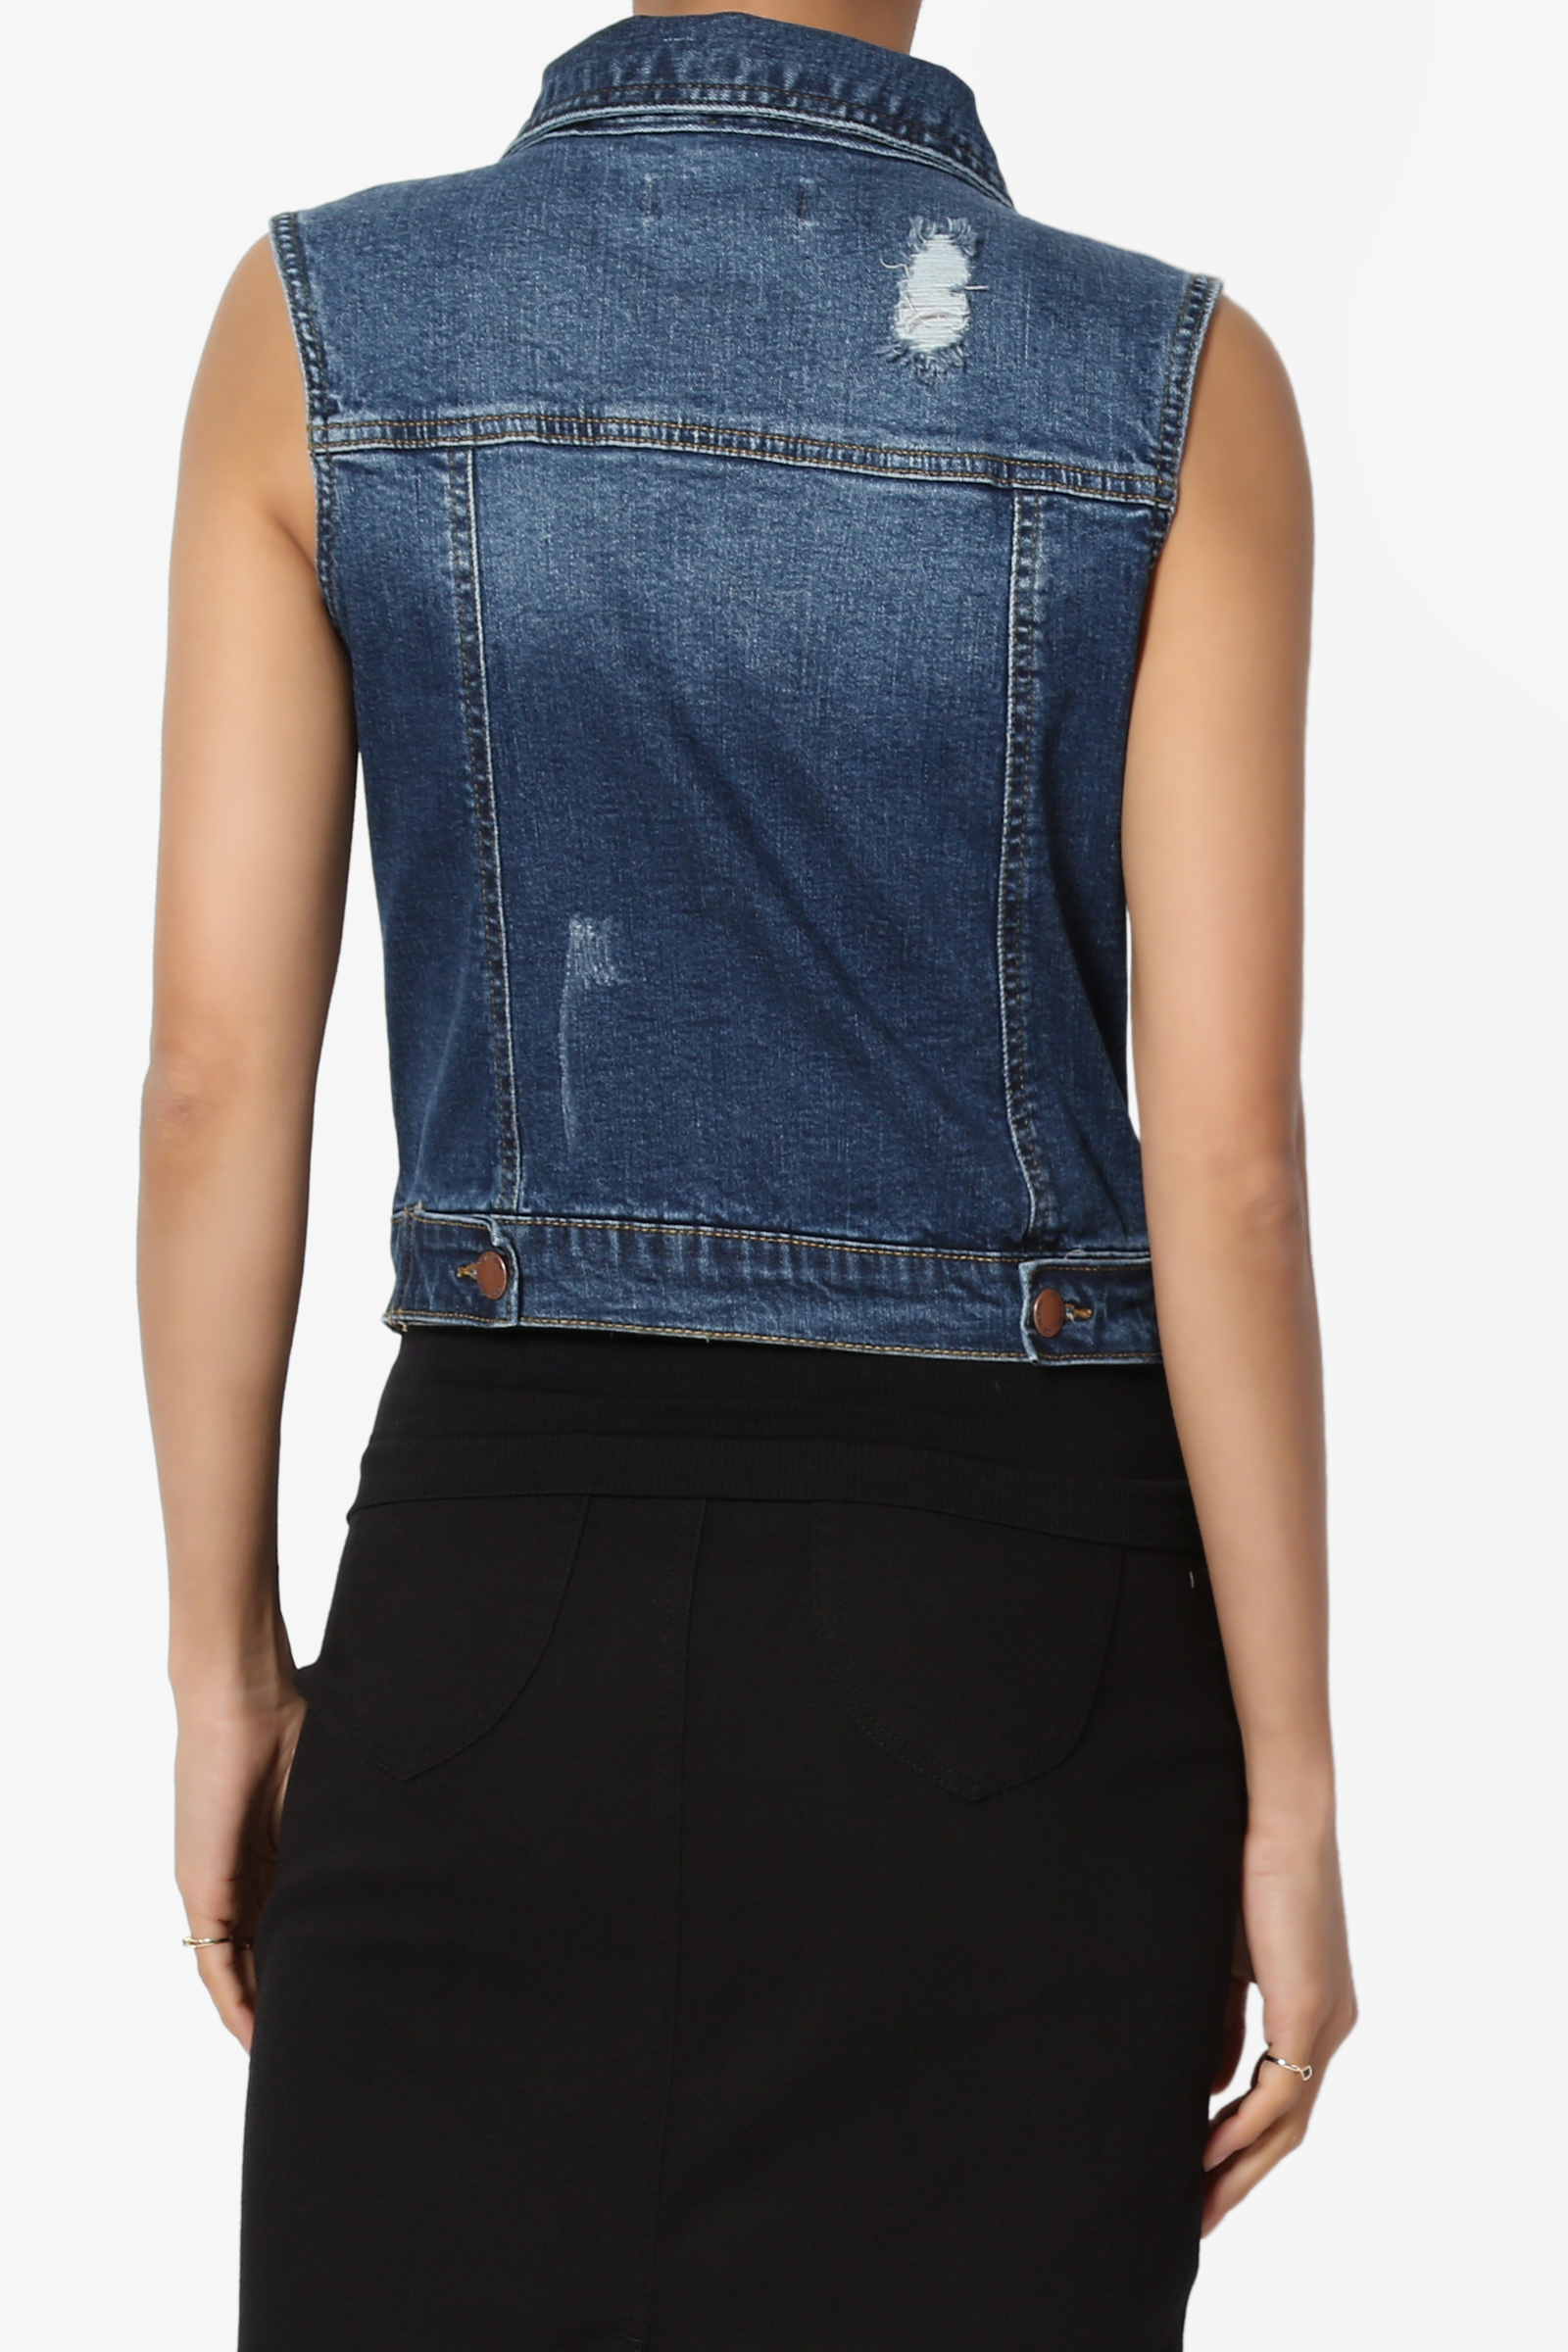 e729d972a1cbf TheMogan - TheMogan Women s S~3X Destroyed Washed Trucker Denim Vest  Sleeveless Jean Jacket - Walmart.com